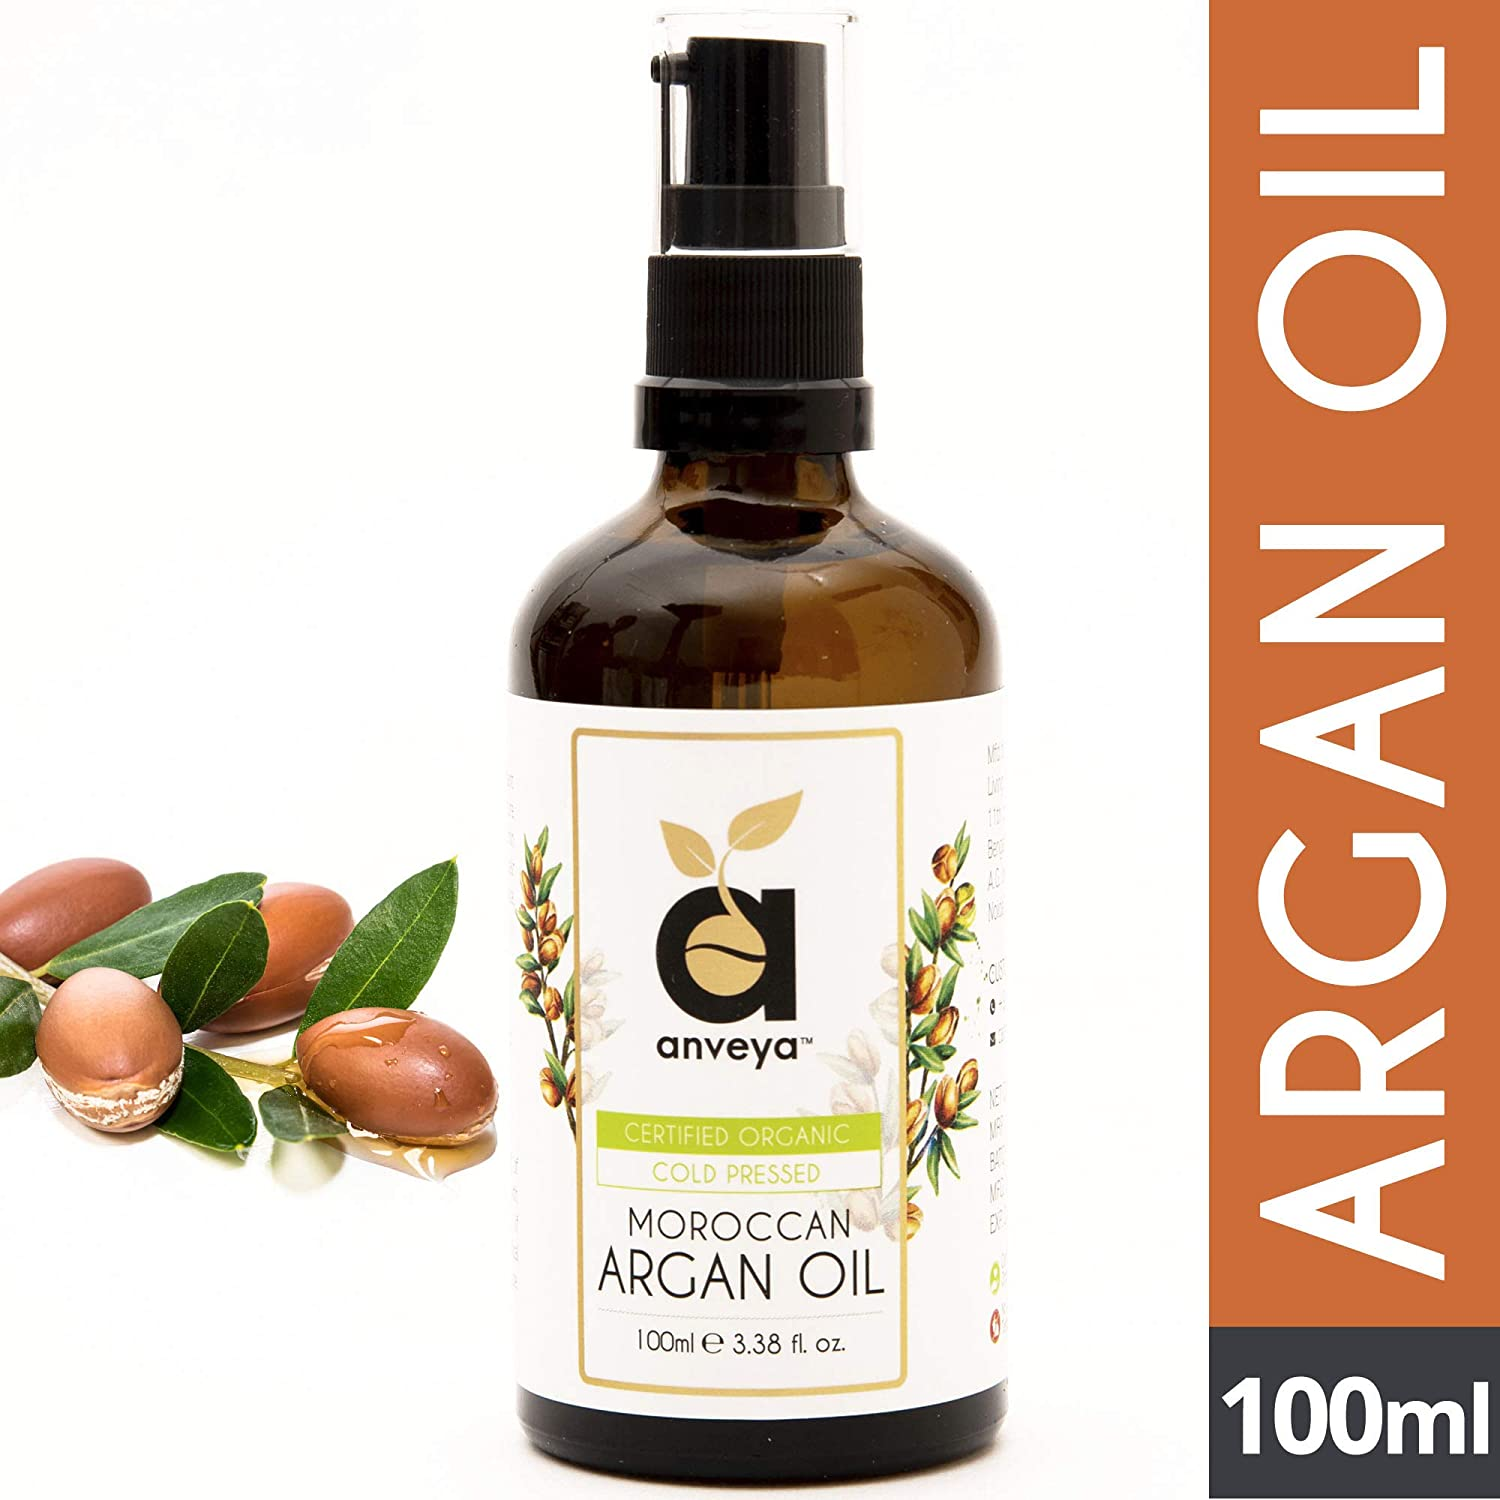 Anveya Moroccan Argan Oil, Cold Pressed & Certified Organic, 100ml (for Hair, Skin & Anti-Ageing Face Care)